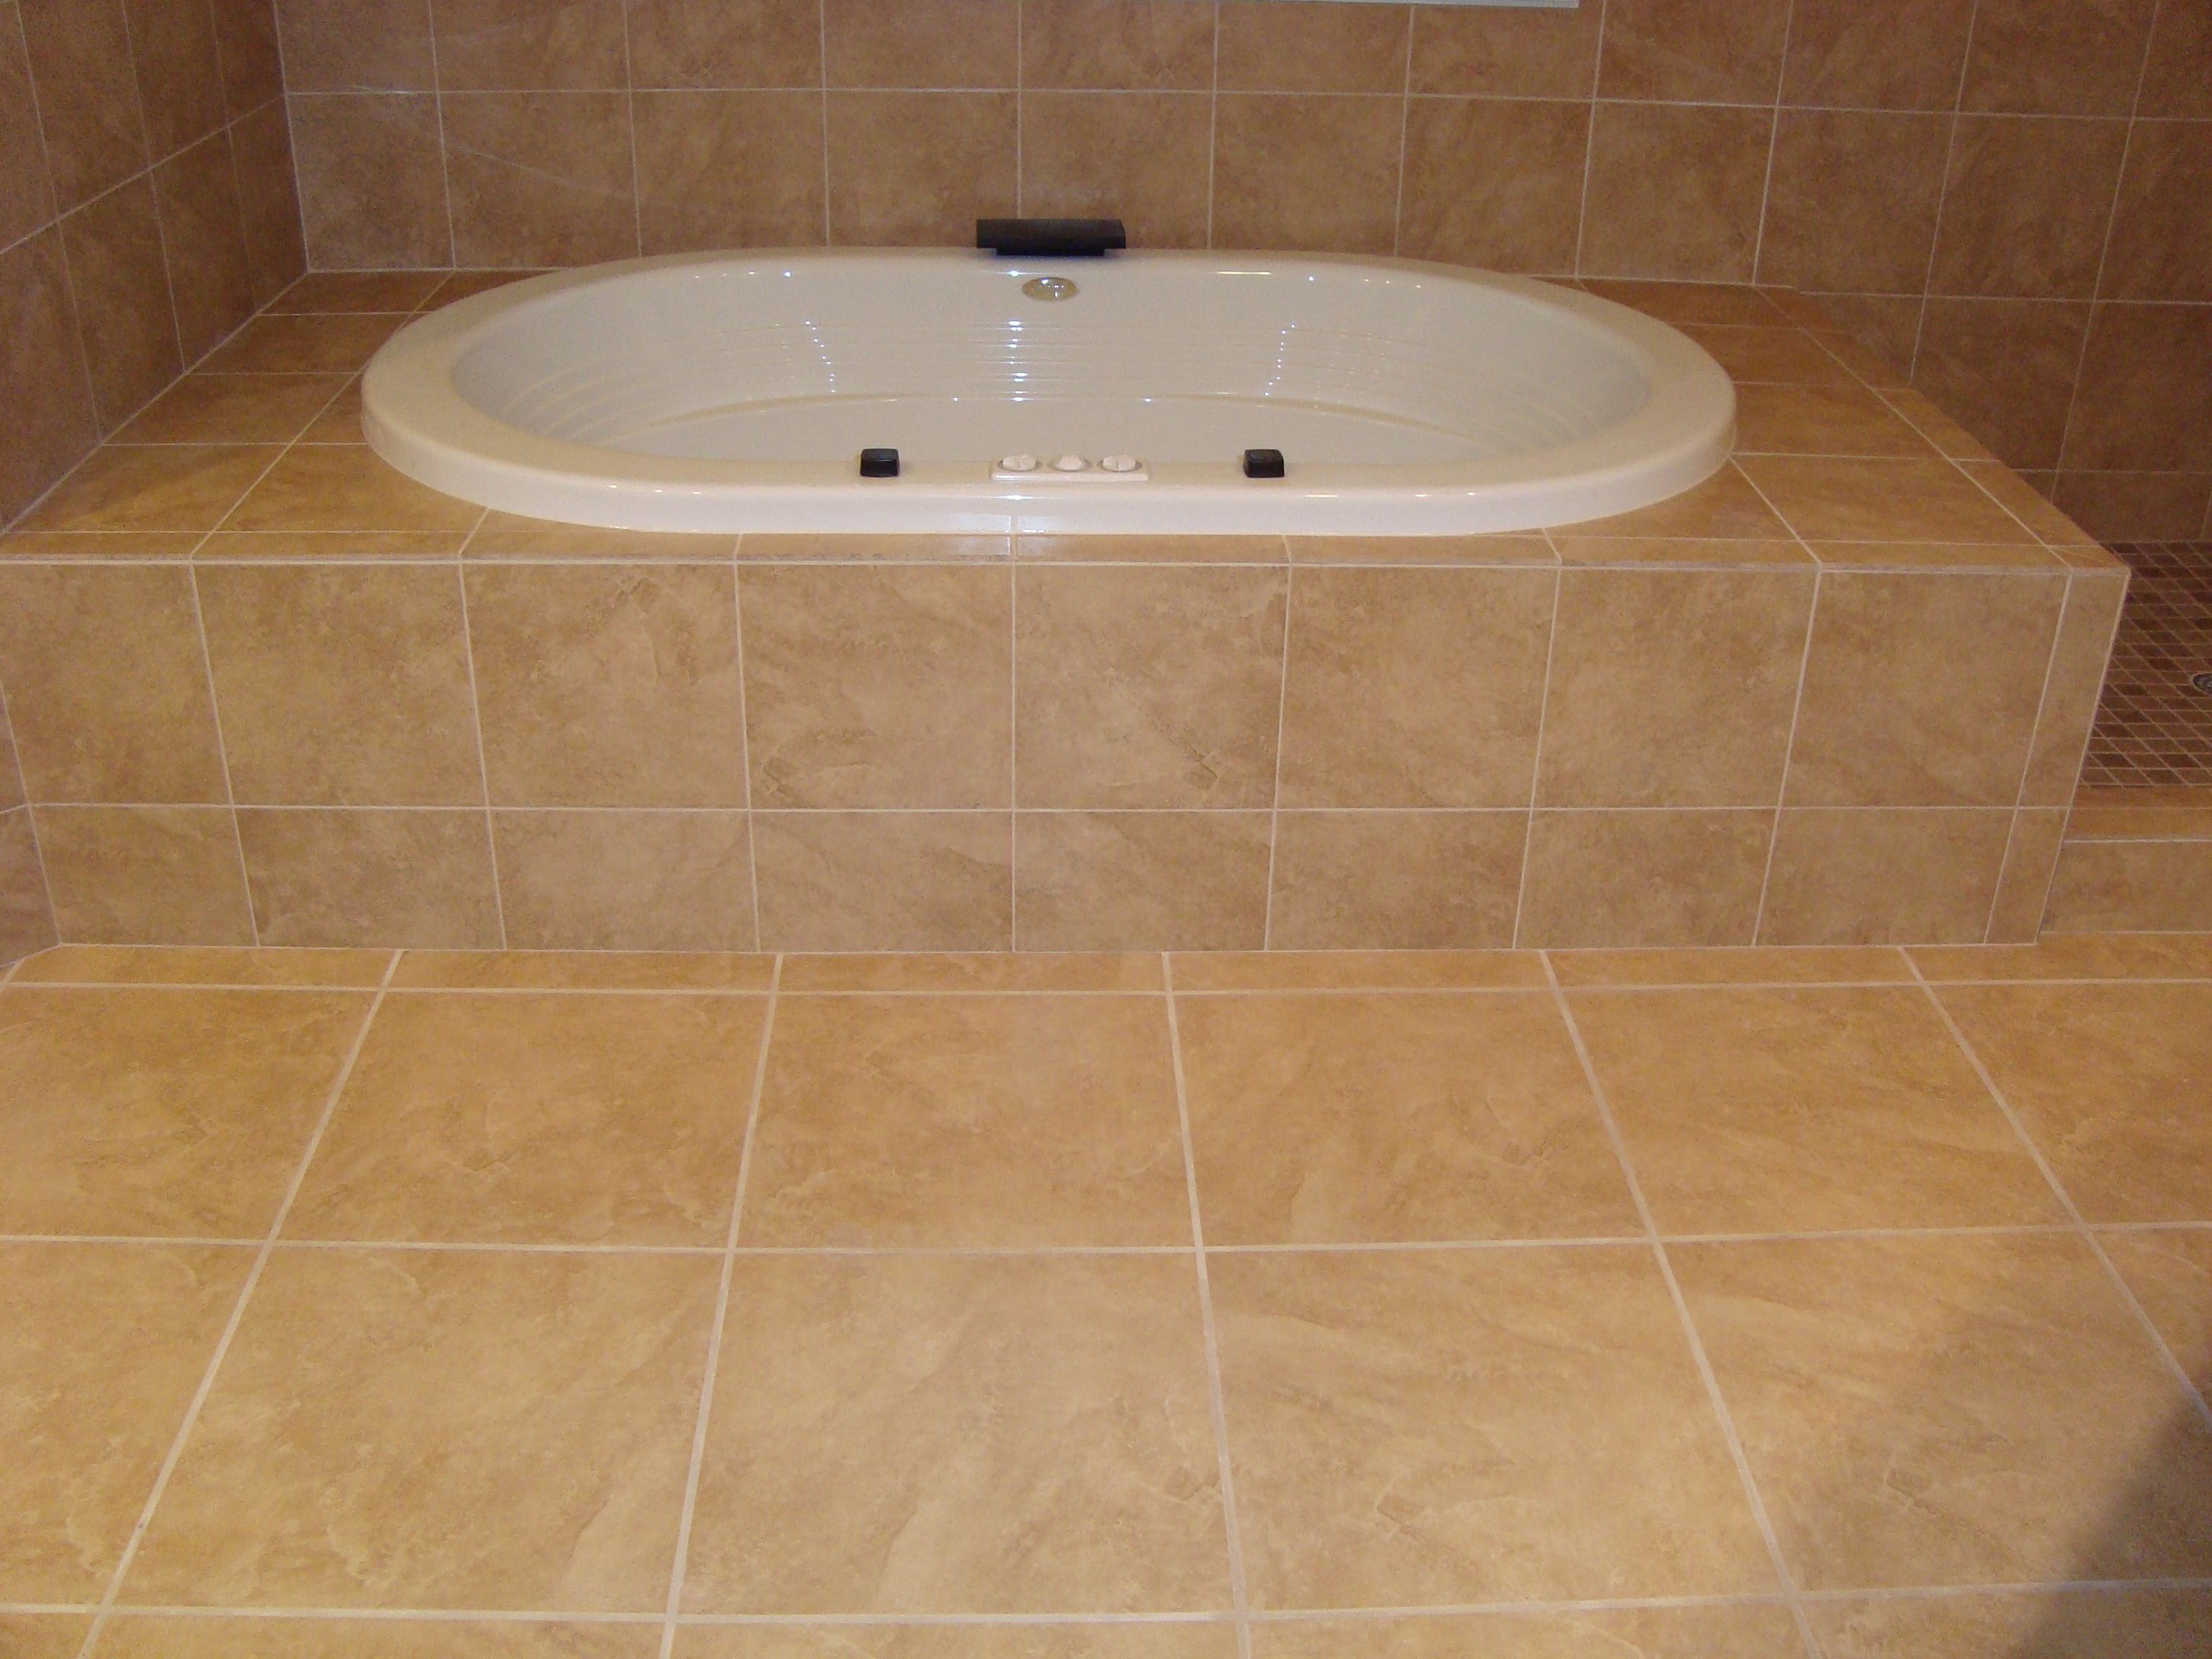 Cheme Construction Inc Bathroom Remodel